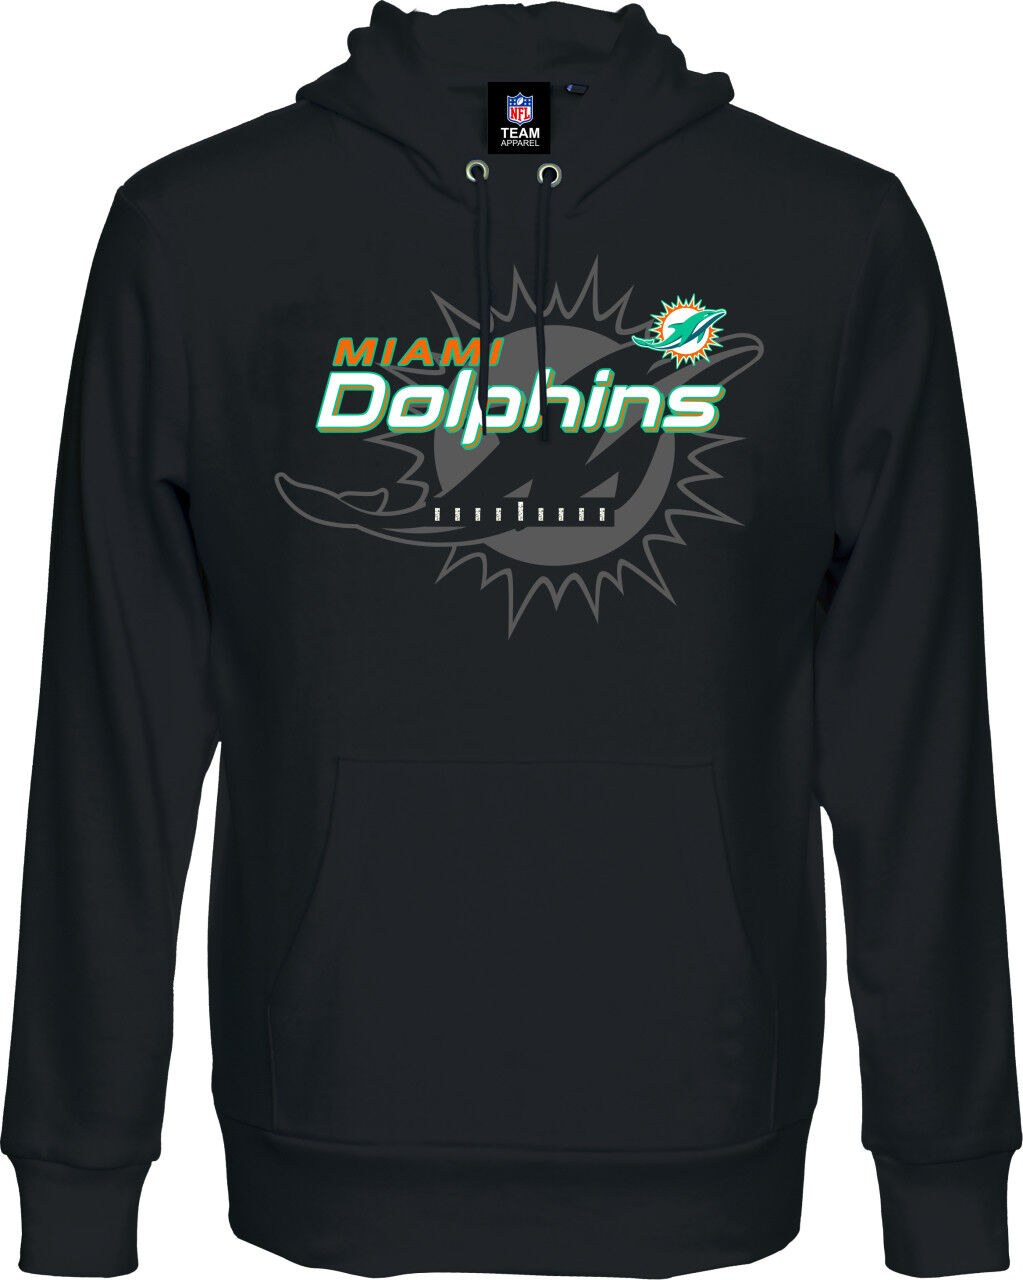 NFL Football MIAMI DOLPHINS DOLPHINS DOLPHINS Hoody Kaputzenpullover Great Value hooded Sweater f64cb3